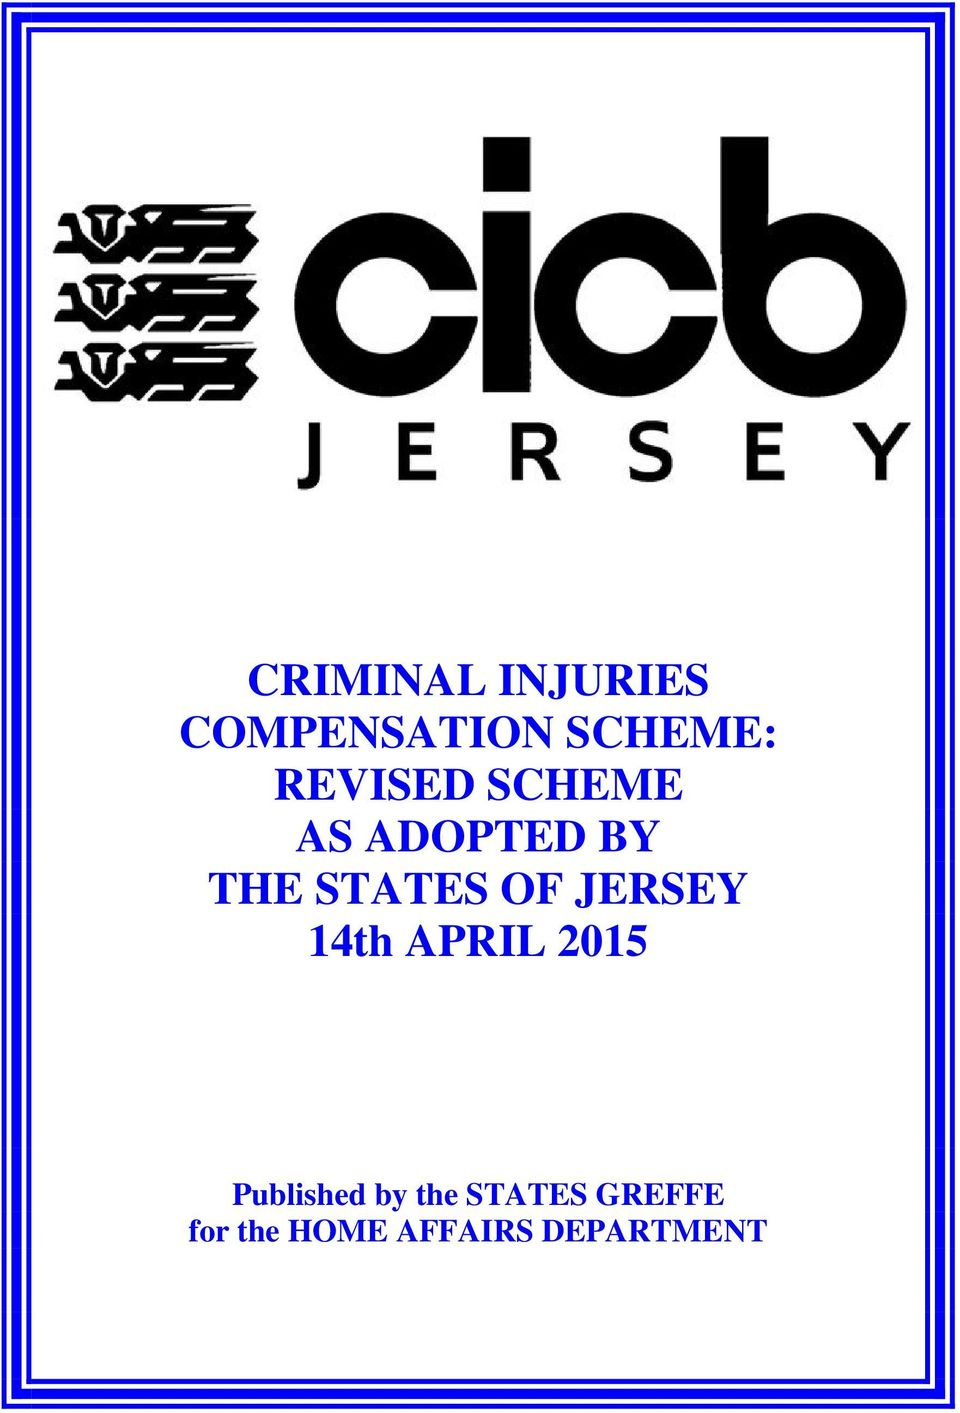 OF JERSEY 14th APRIL 2015 Published by